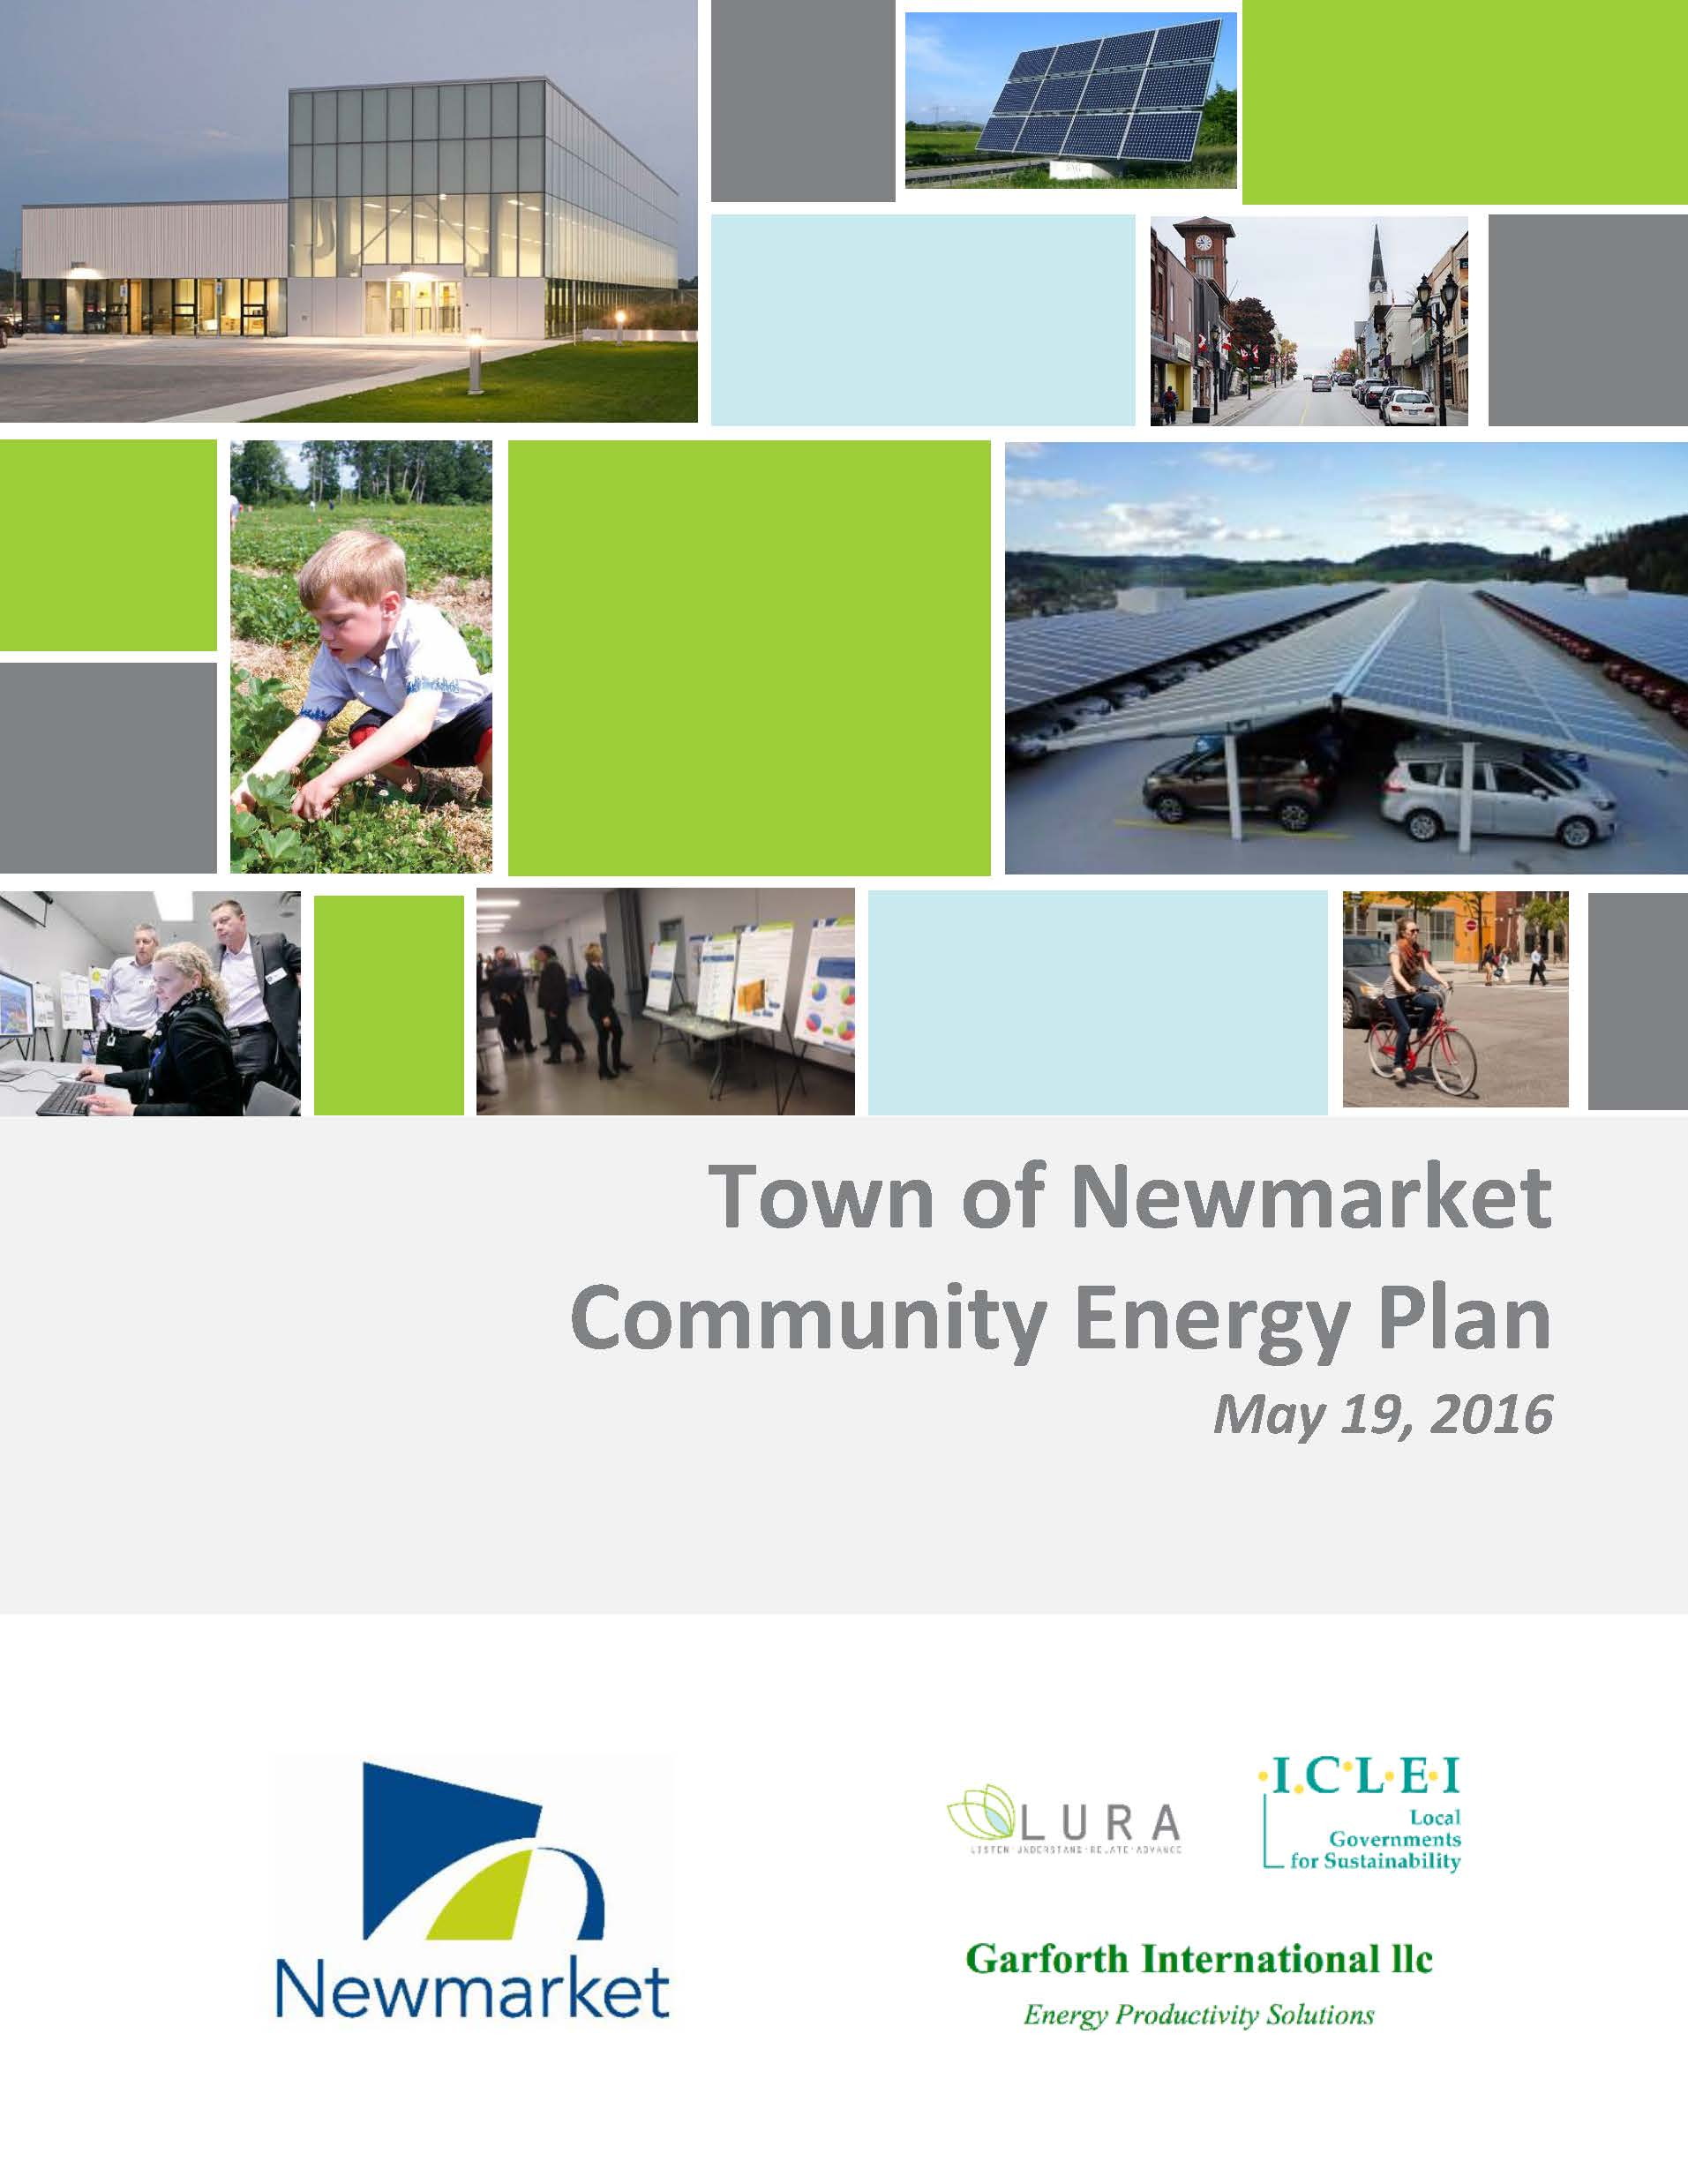 Town of Newmarket Community Energy Plan Cover